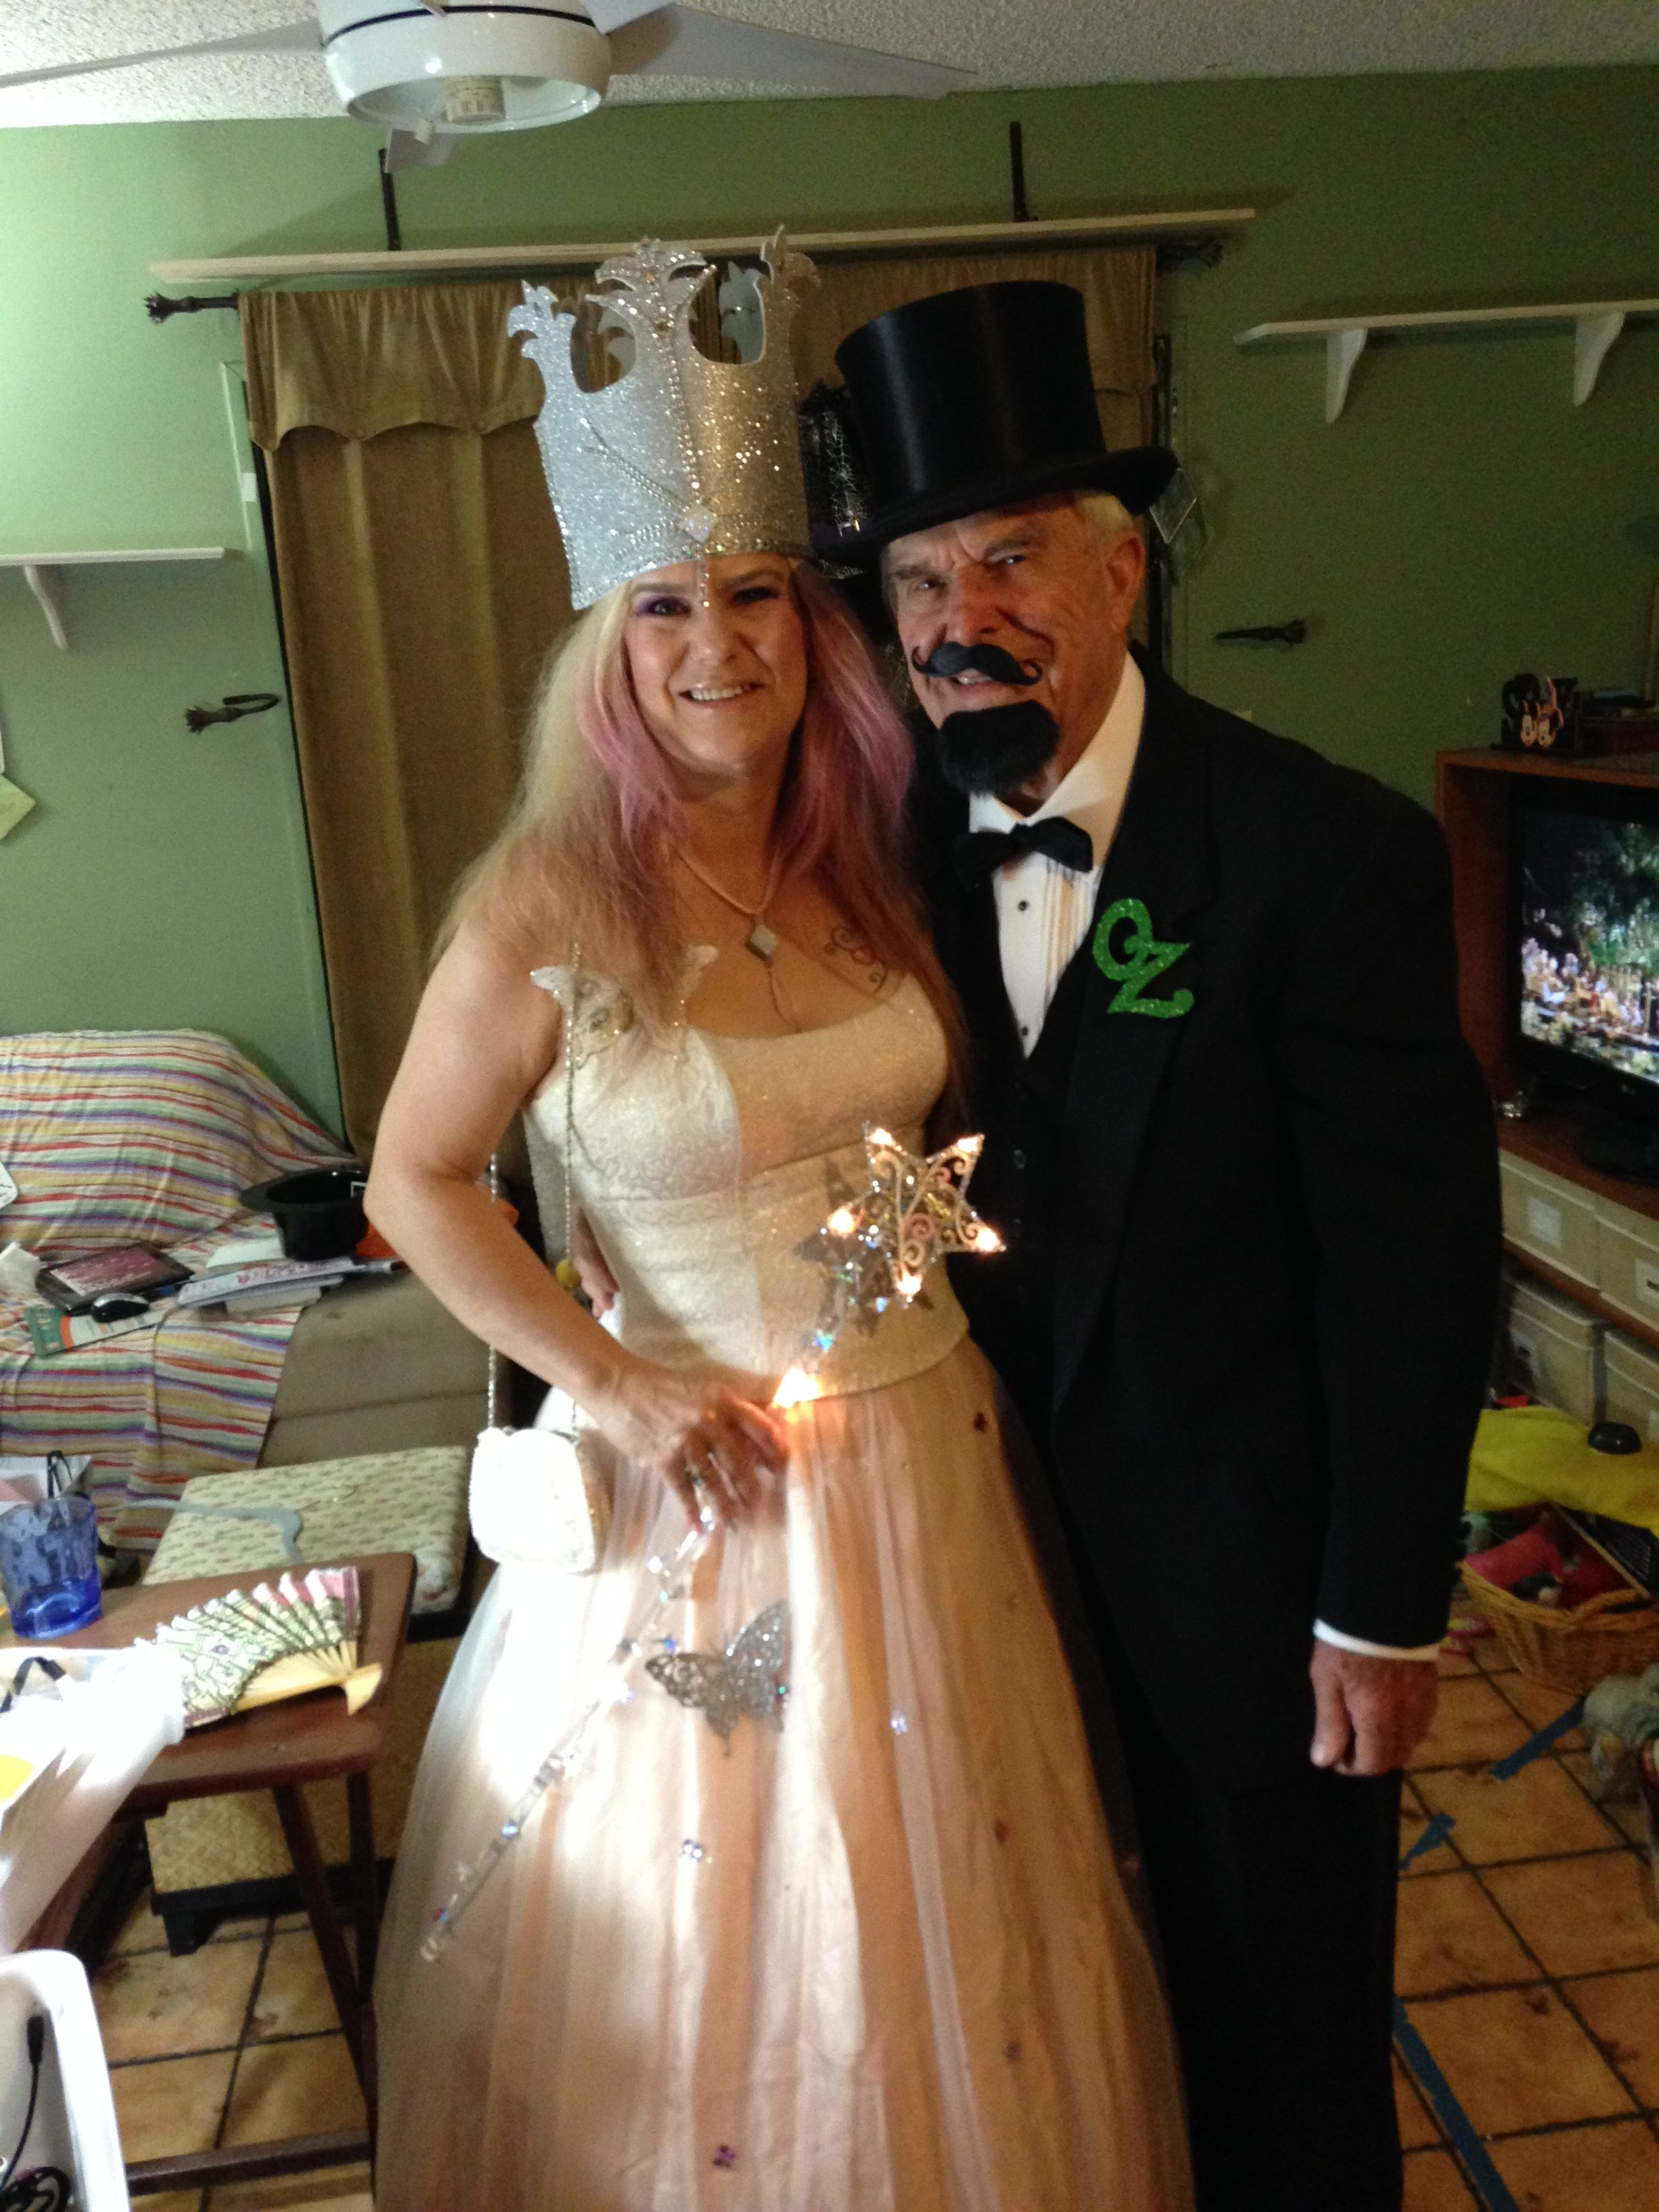 Glinda and The Wizard of Oz!!!  Altered prom dress, handmade crown and wand.